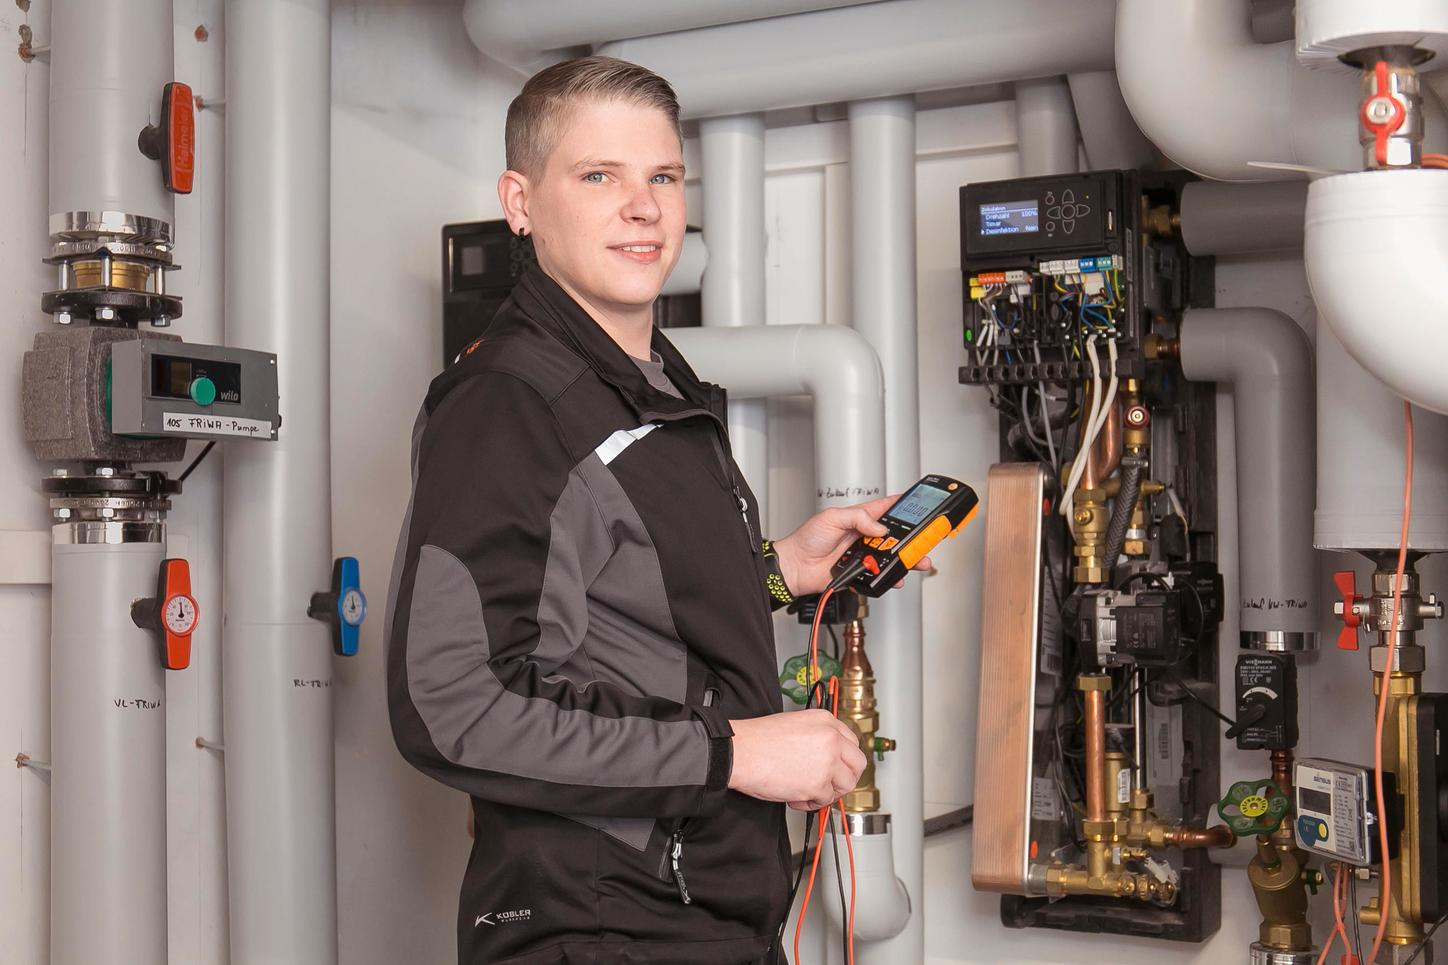 The image shows field service technician Patrick Schardt at a heating system.